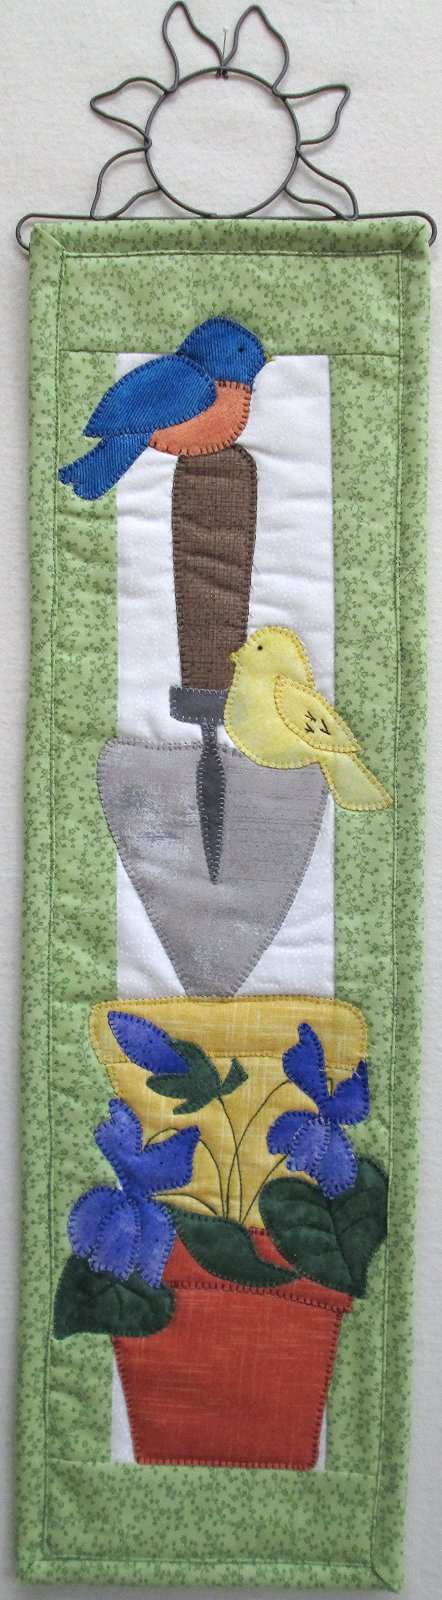 Birds 'n Spring Violets Wall Hanging Kit